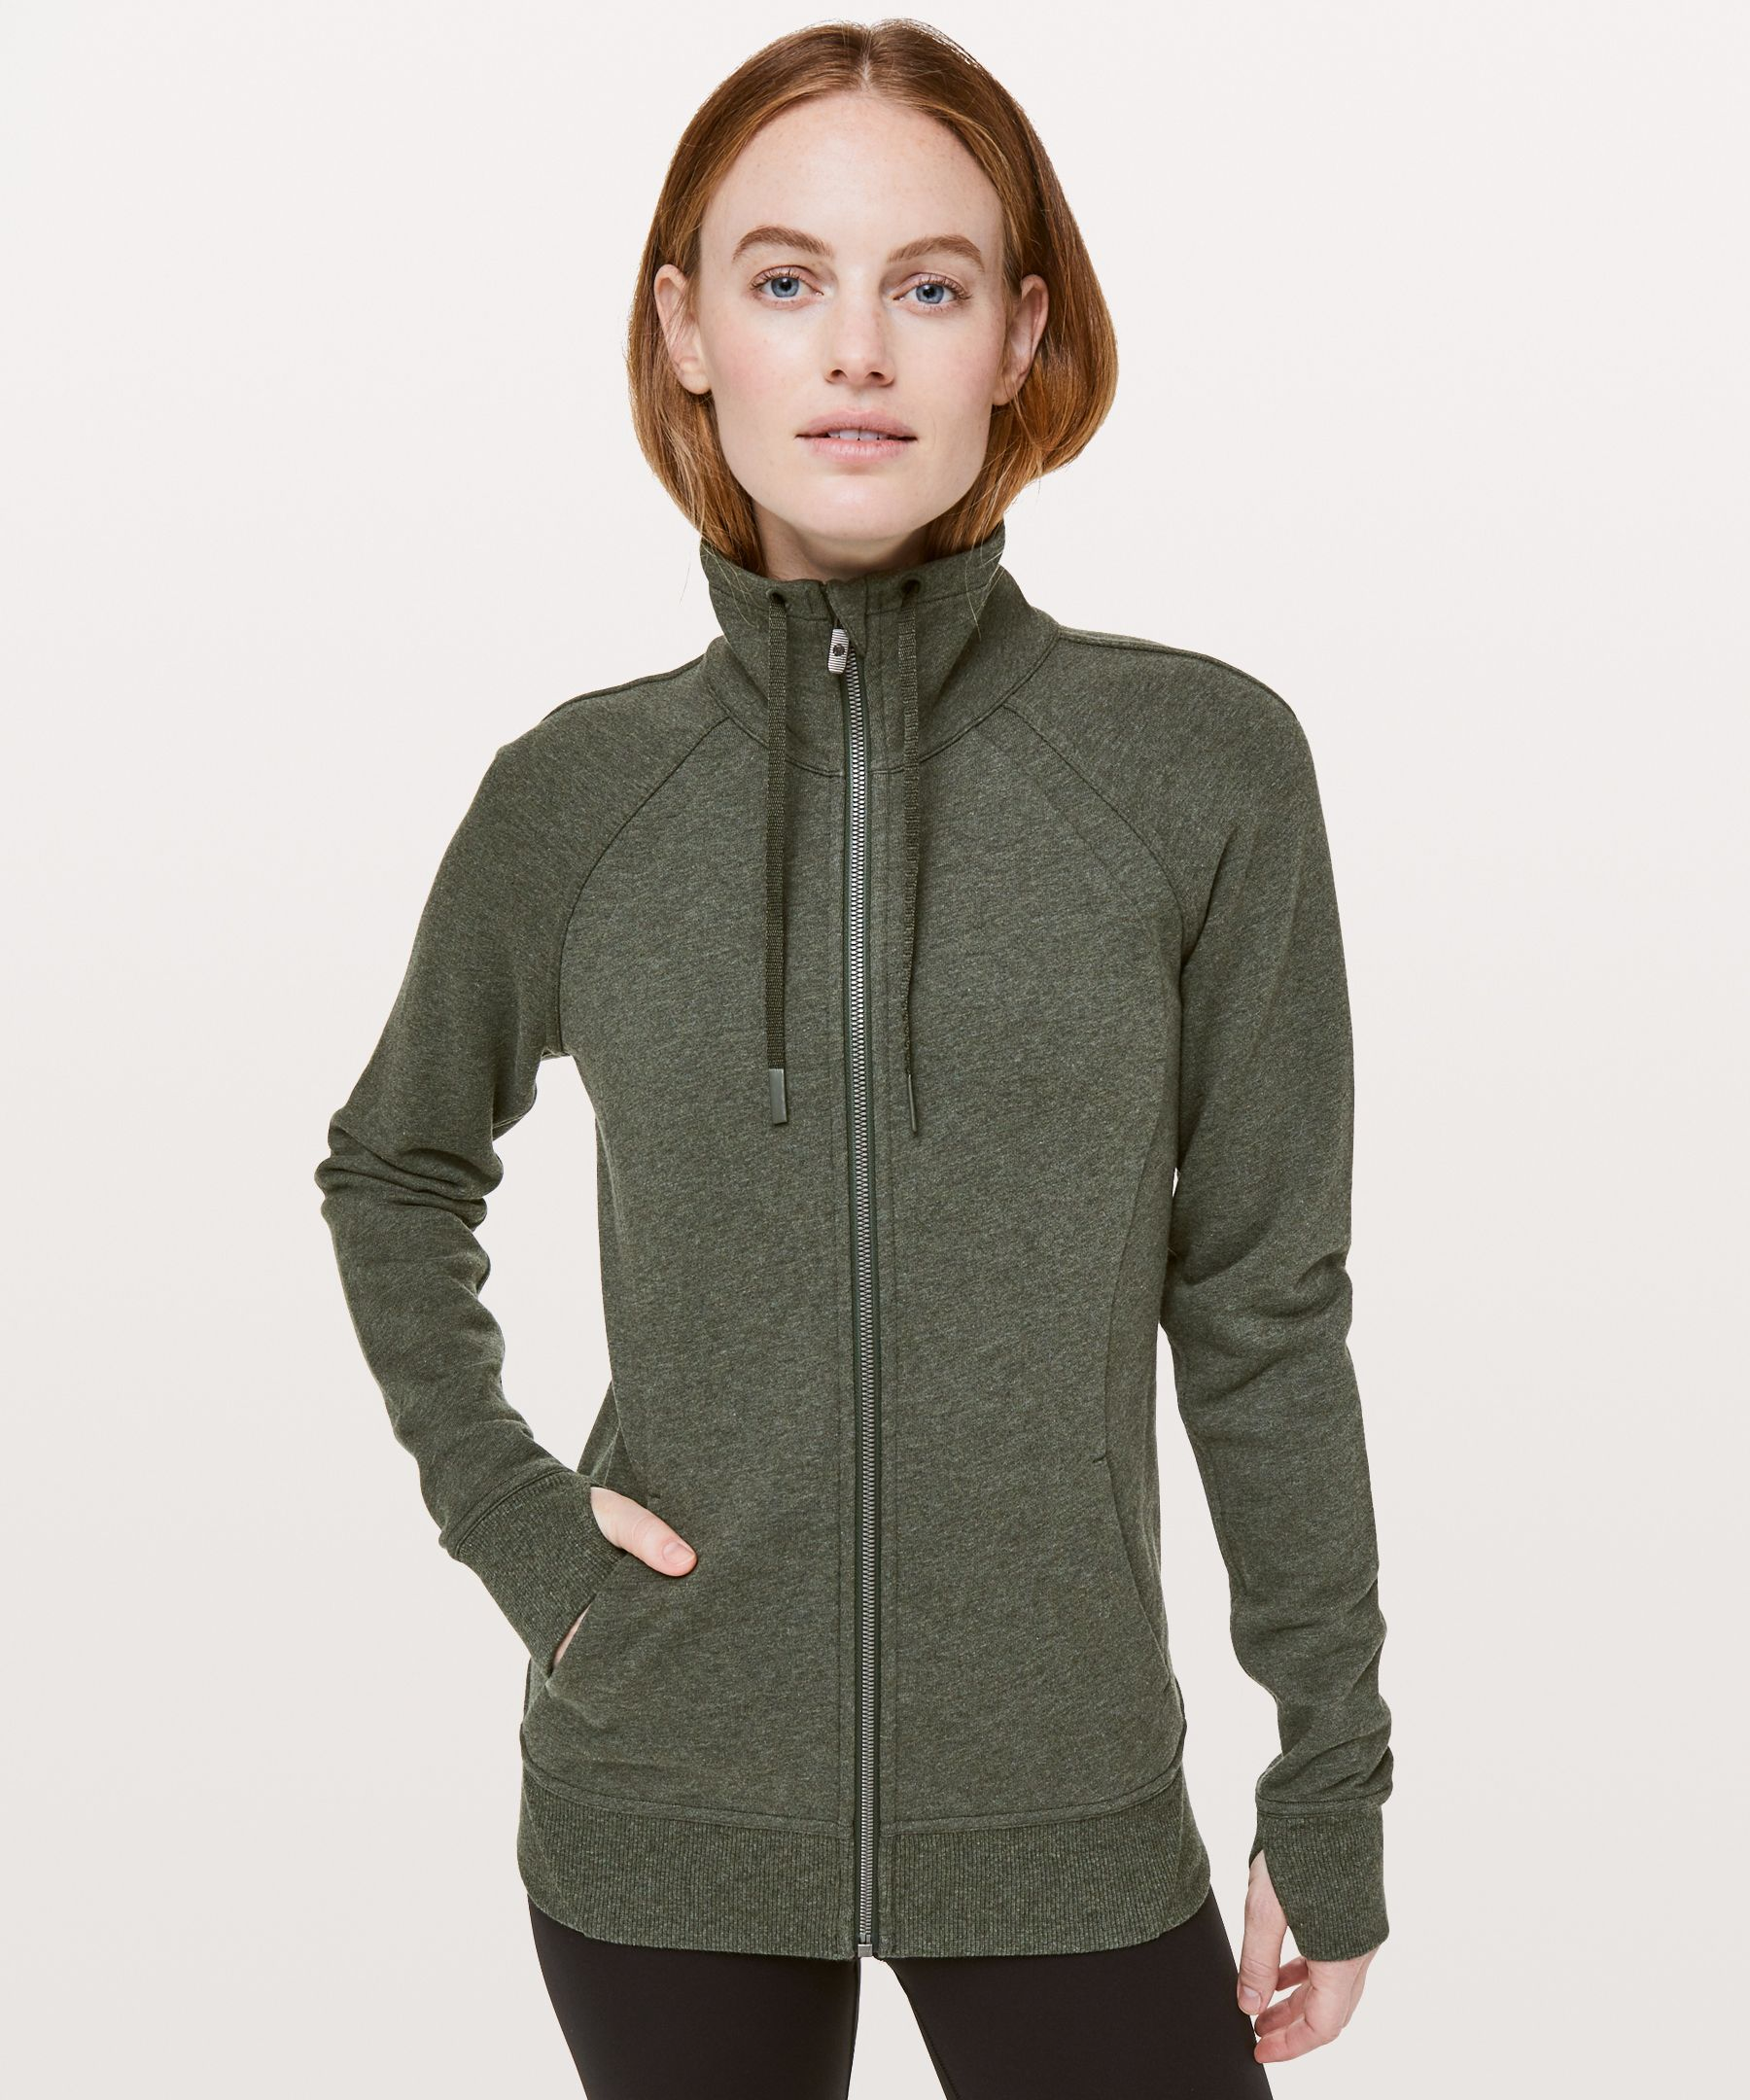 Huddle & Hustle Jacket by Lululemon